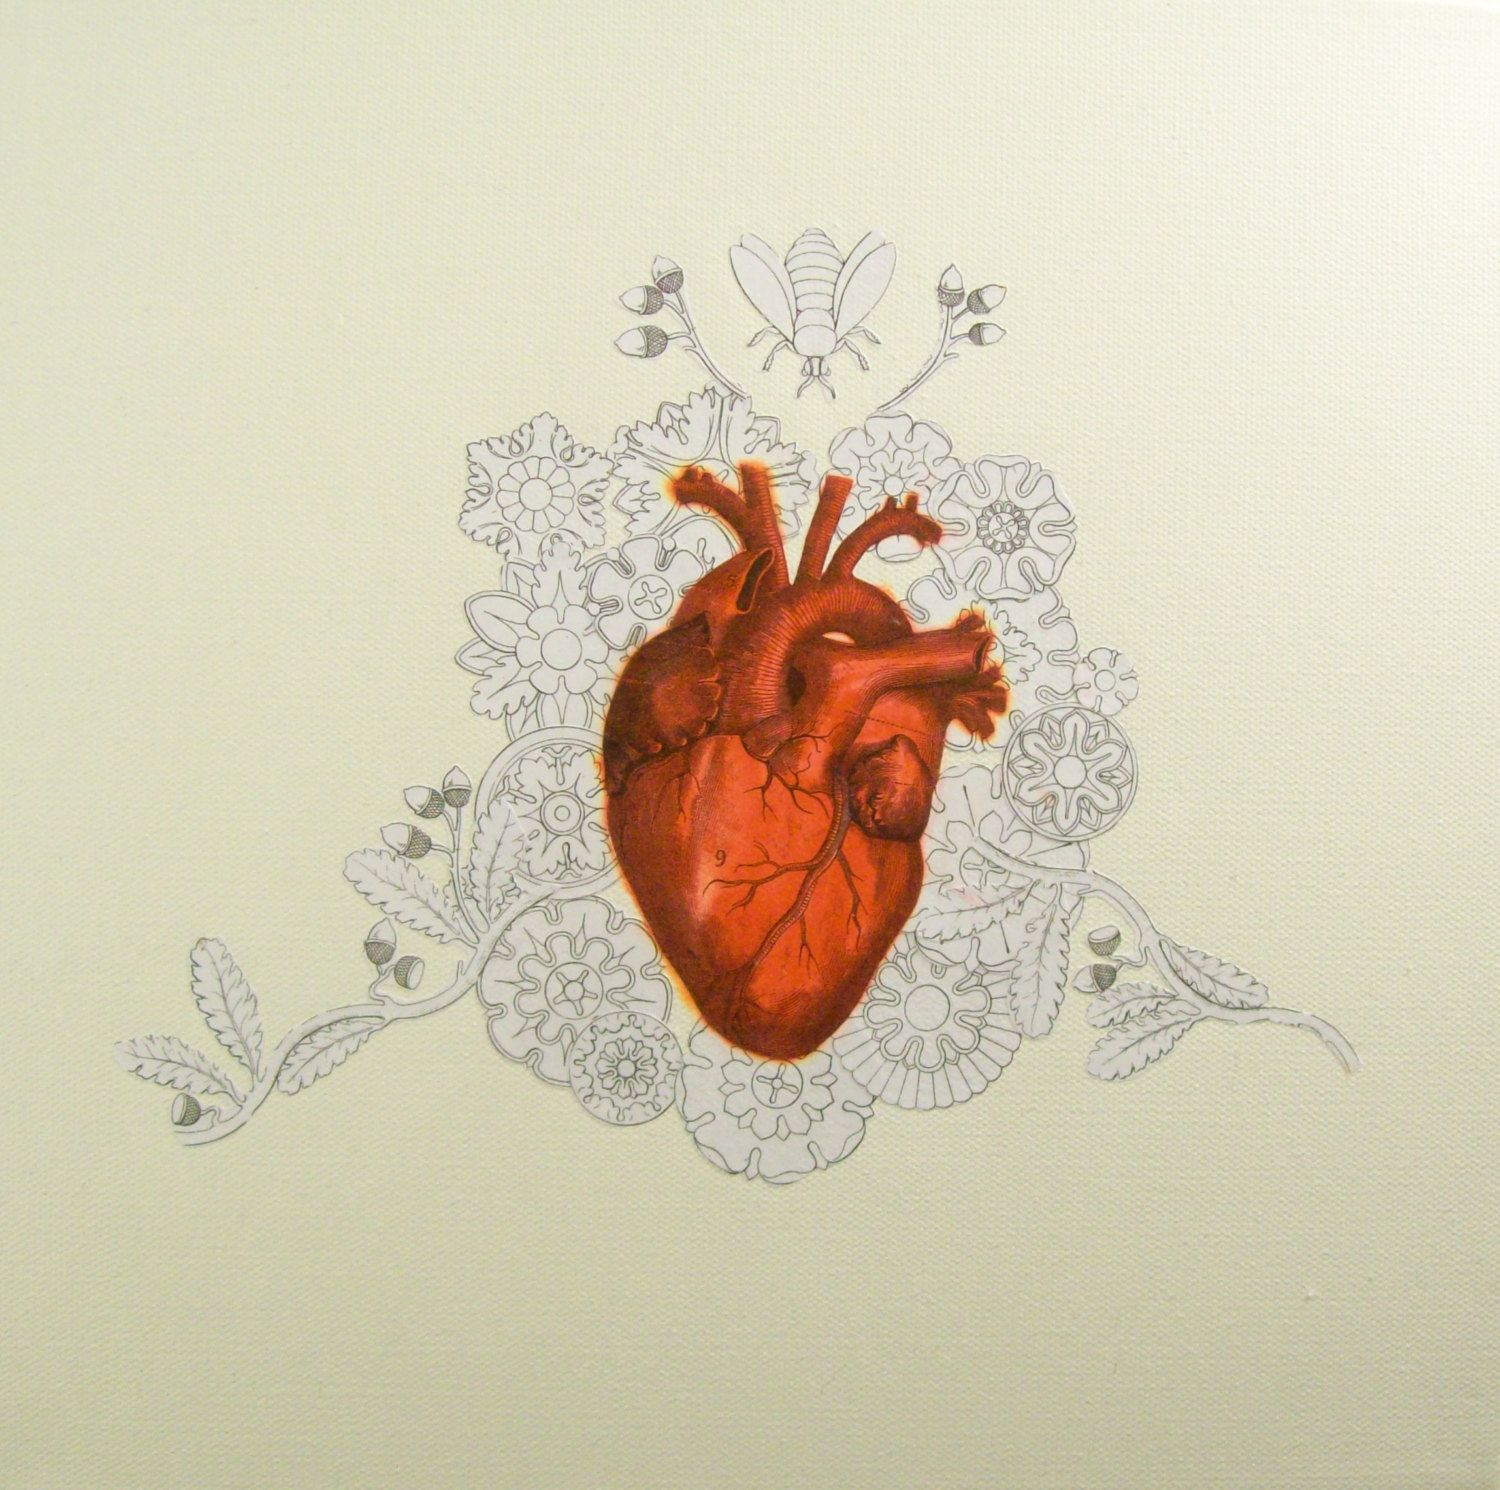 Red Valentine Anatomical Medical Heart With Flowers Oddity Art. $300.00, via Etsy.